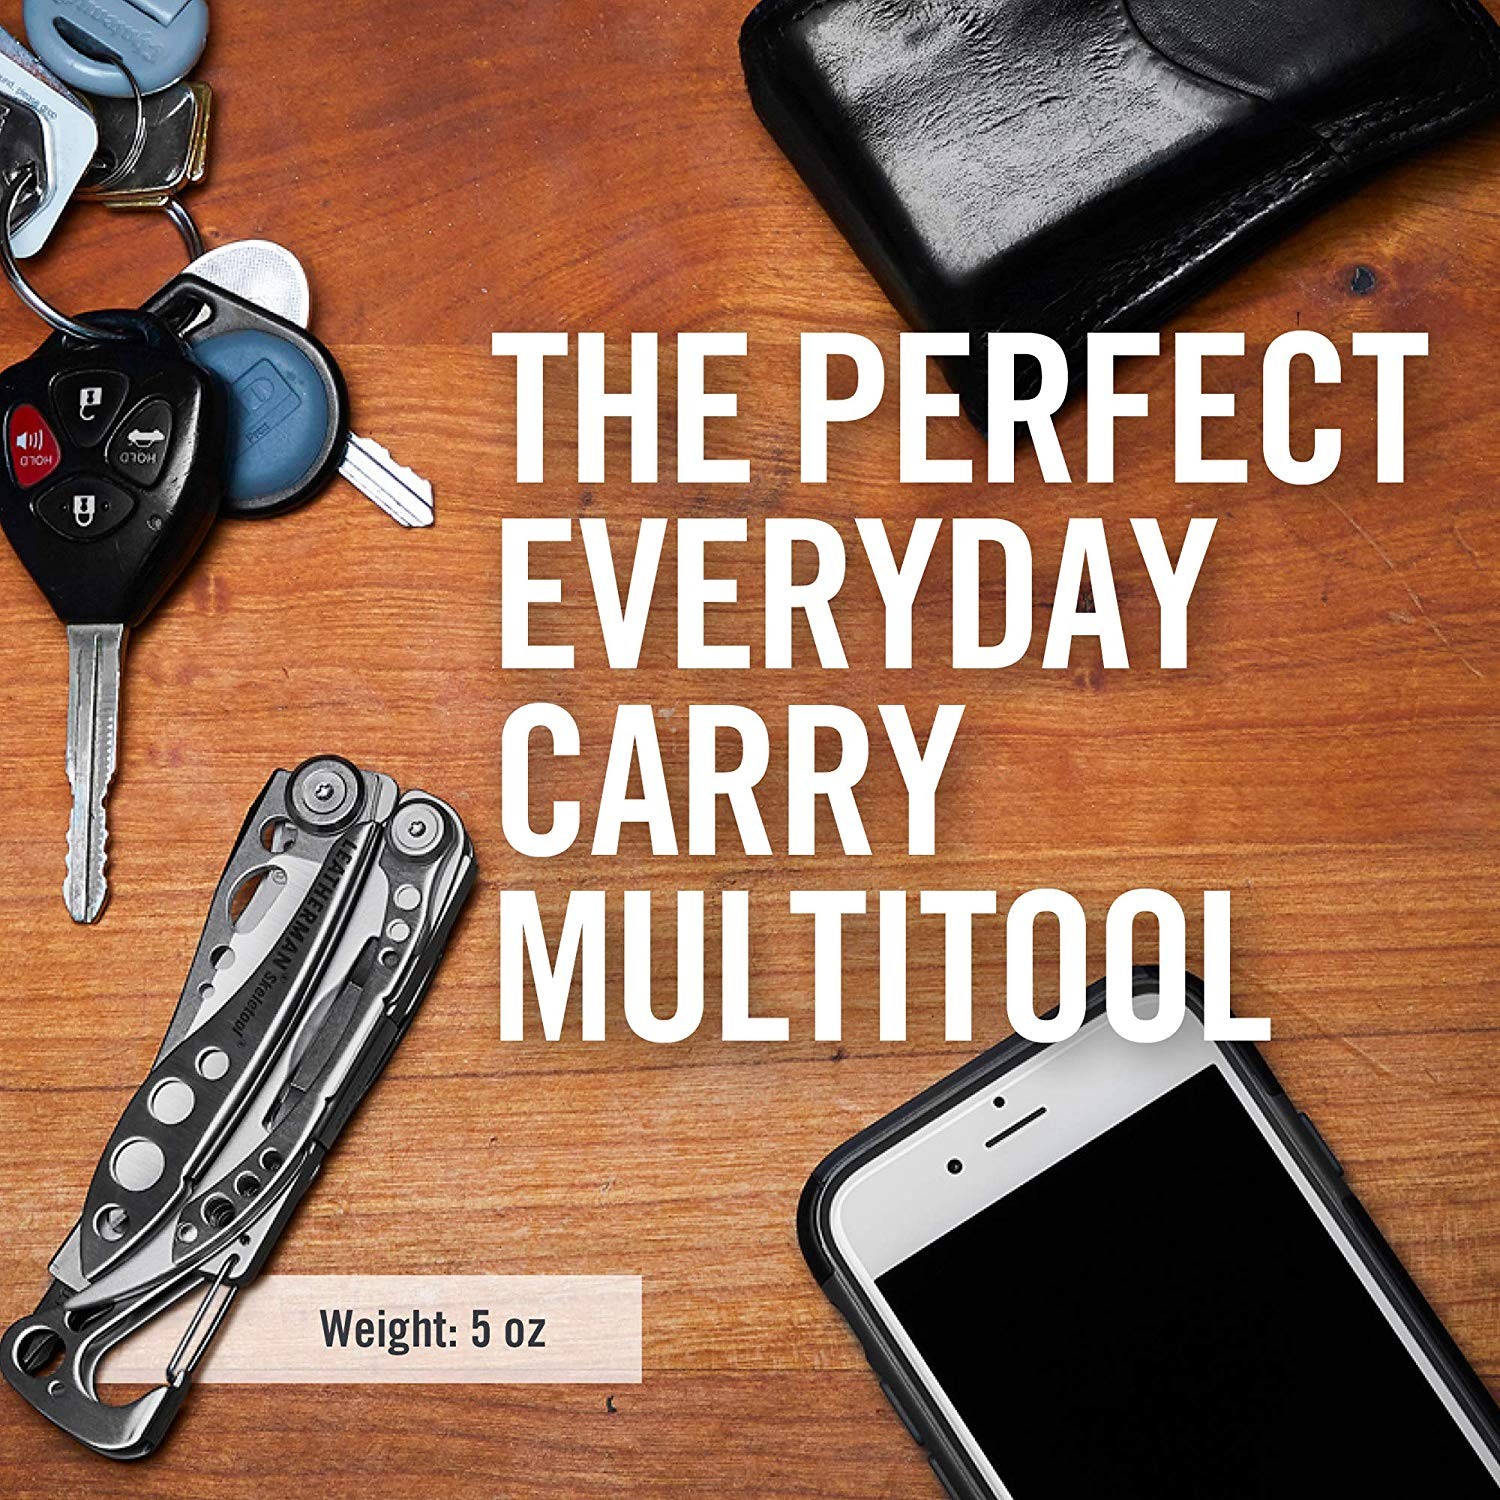 Leatherman Skeletool Multi-tools, Compact Pocket size multi-tool in India, Multi-tool with a combo knife, bit driver, pliers and more, Ultra Light EDC Multi-tool in India, Leatherman Tools online in India @ Lightmen, Buy Leatherman Multi-Tools Online